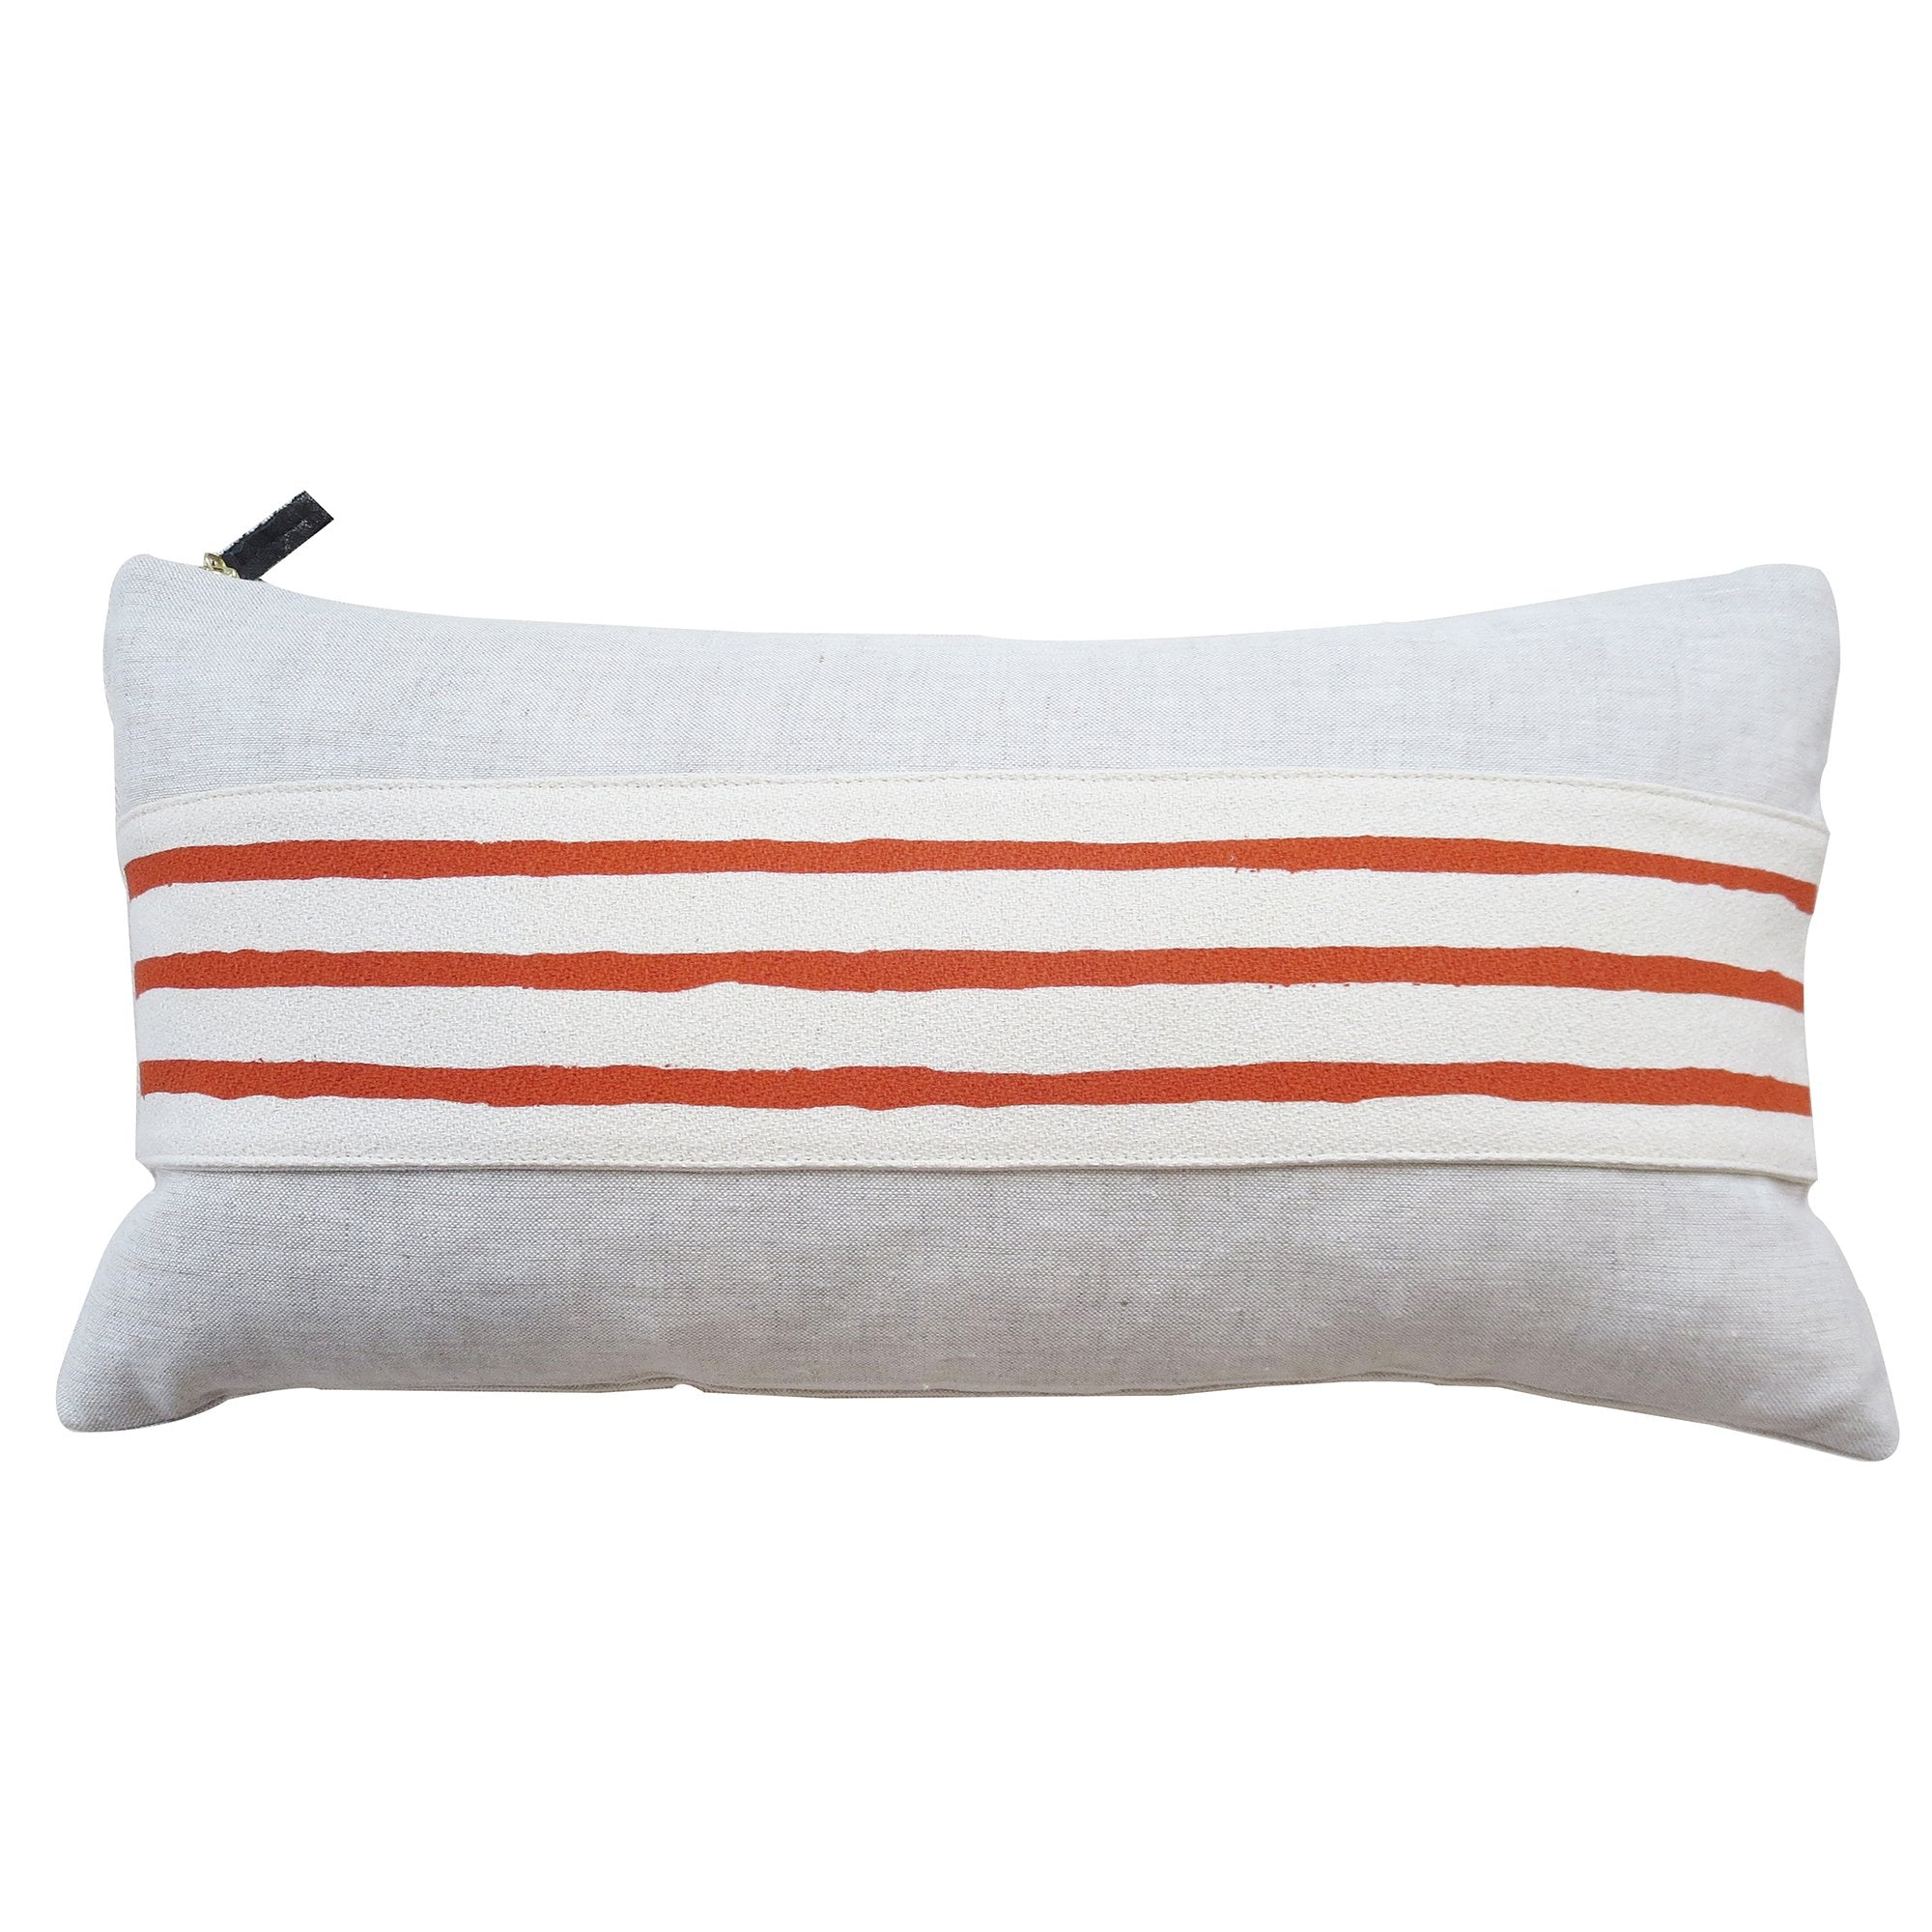 3 LINE TOMATO BAND LINEN PILLOW COVER